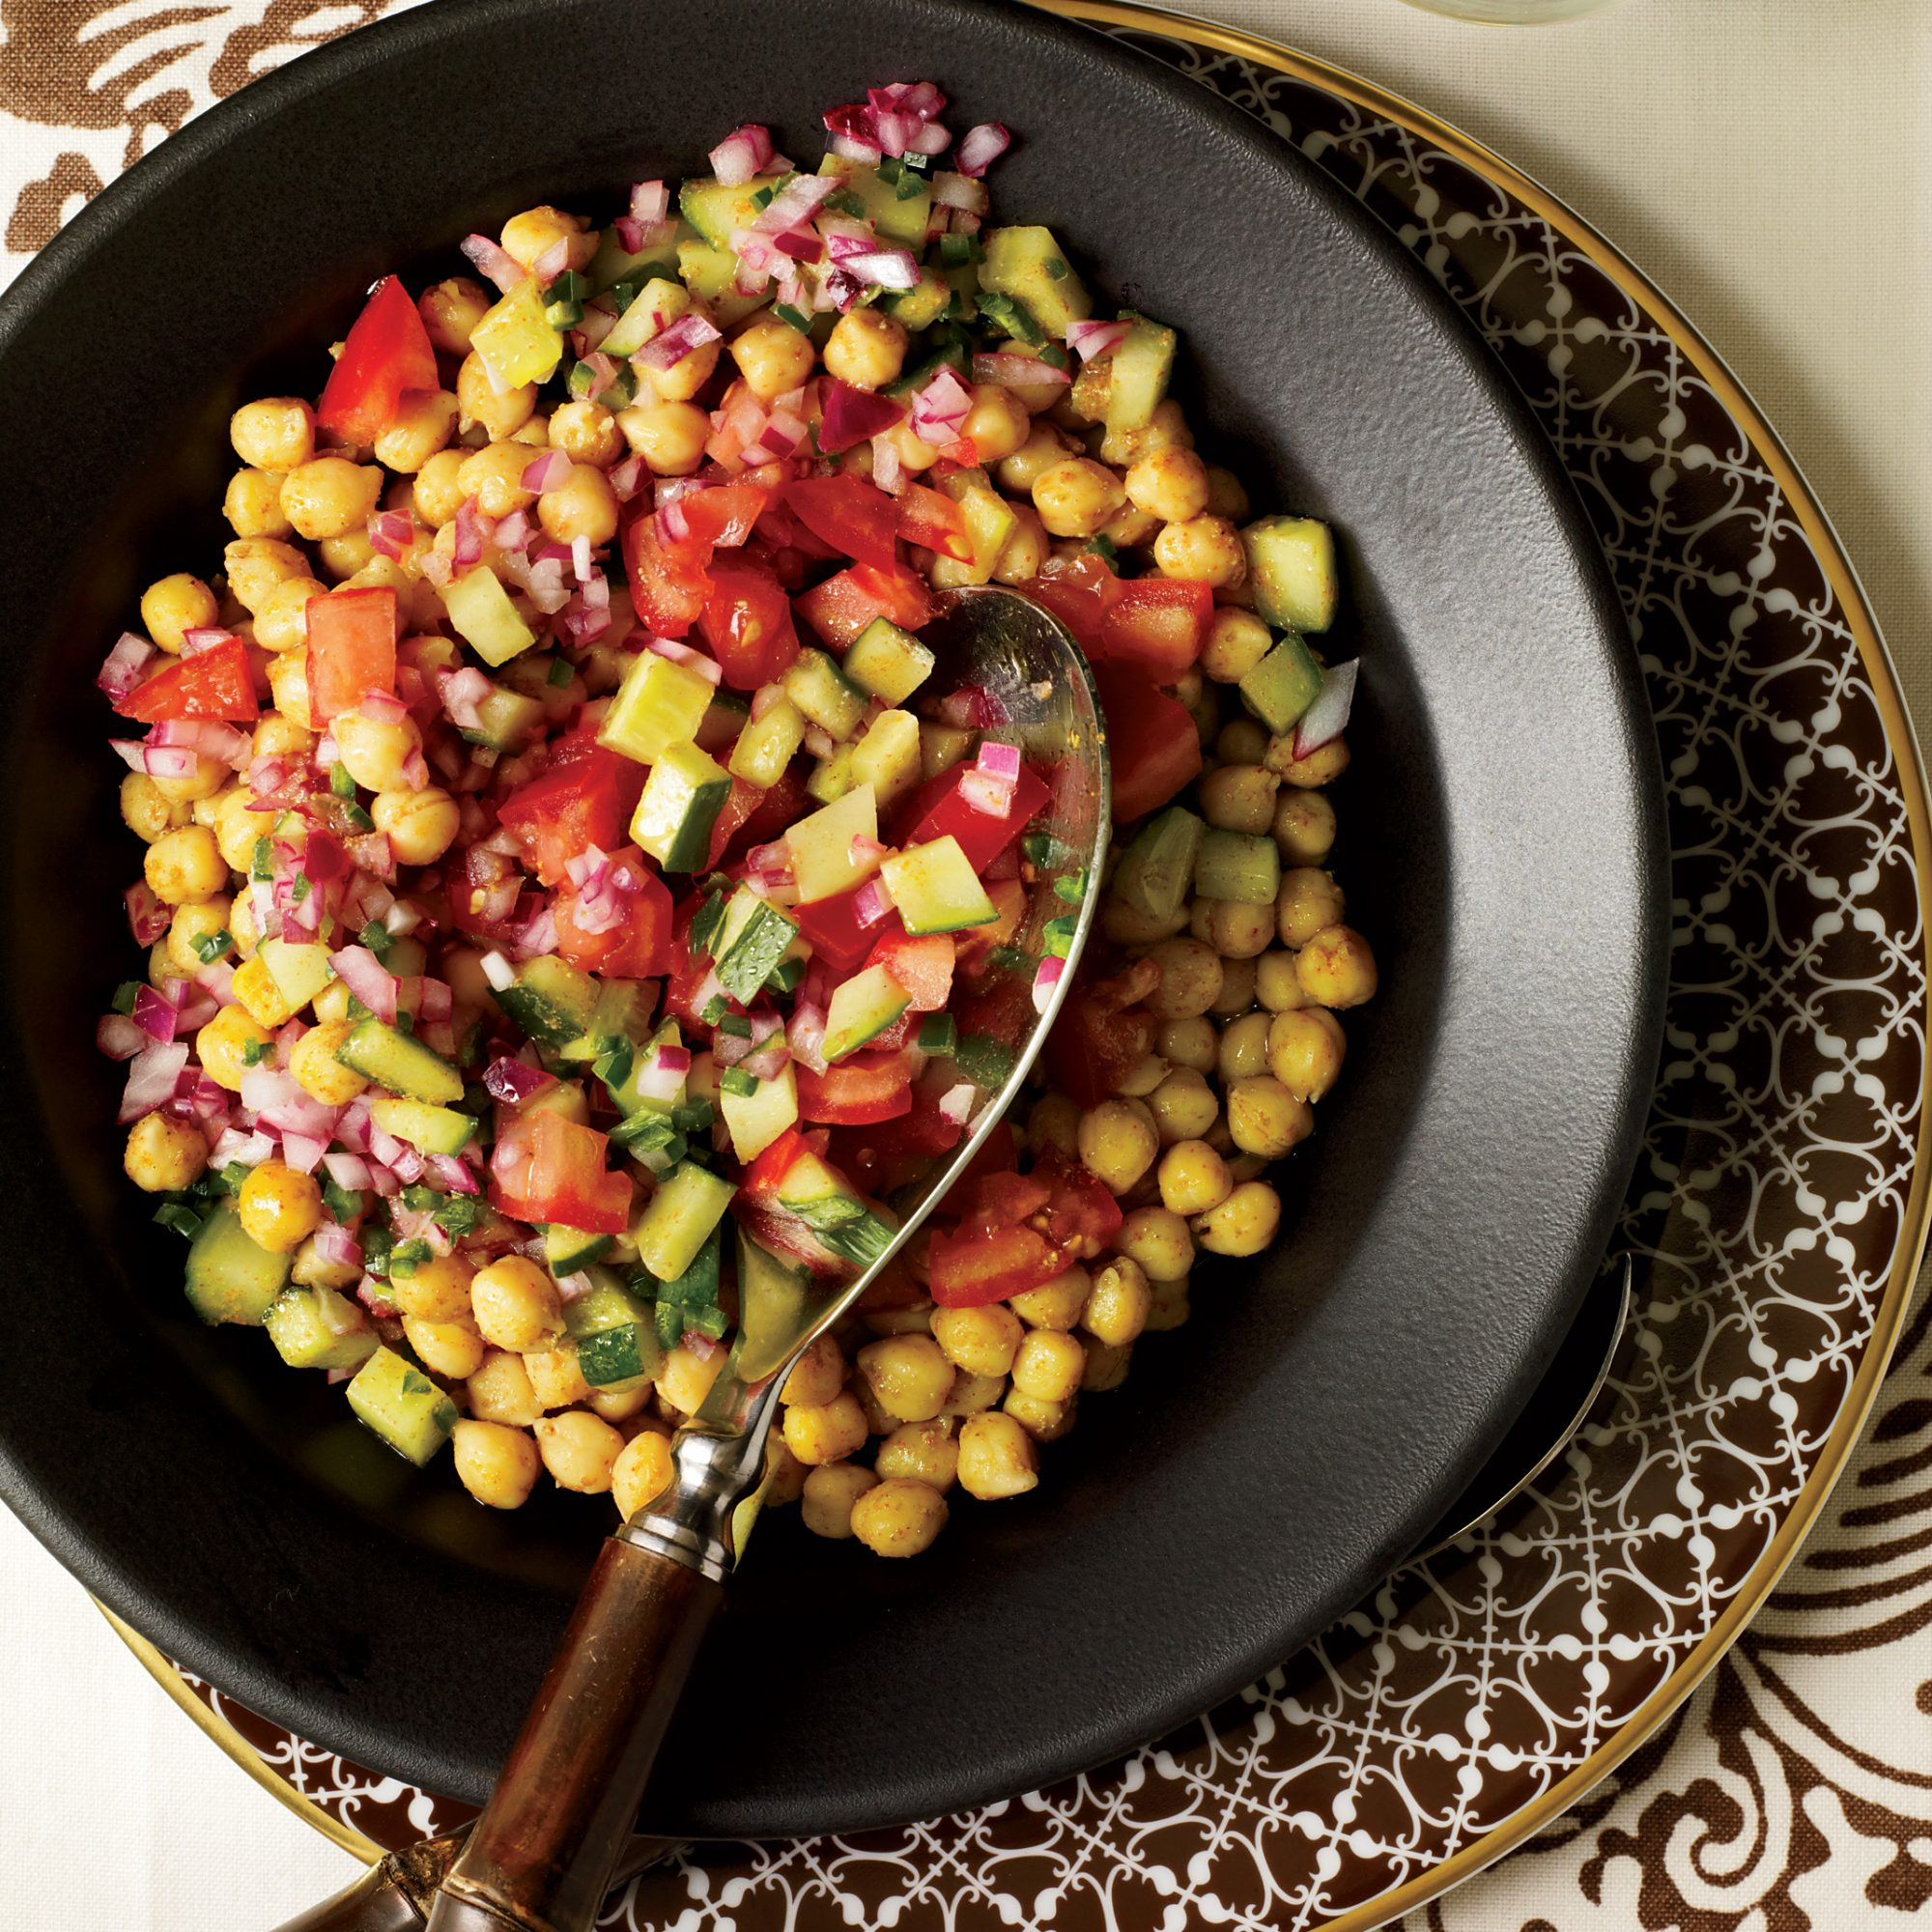 200911-r-spicy-chickpea-salad.jpg